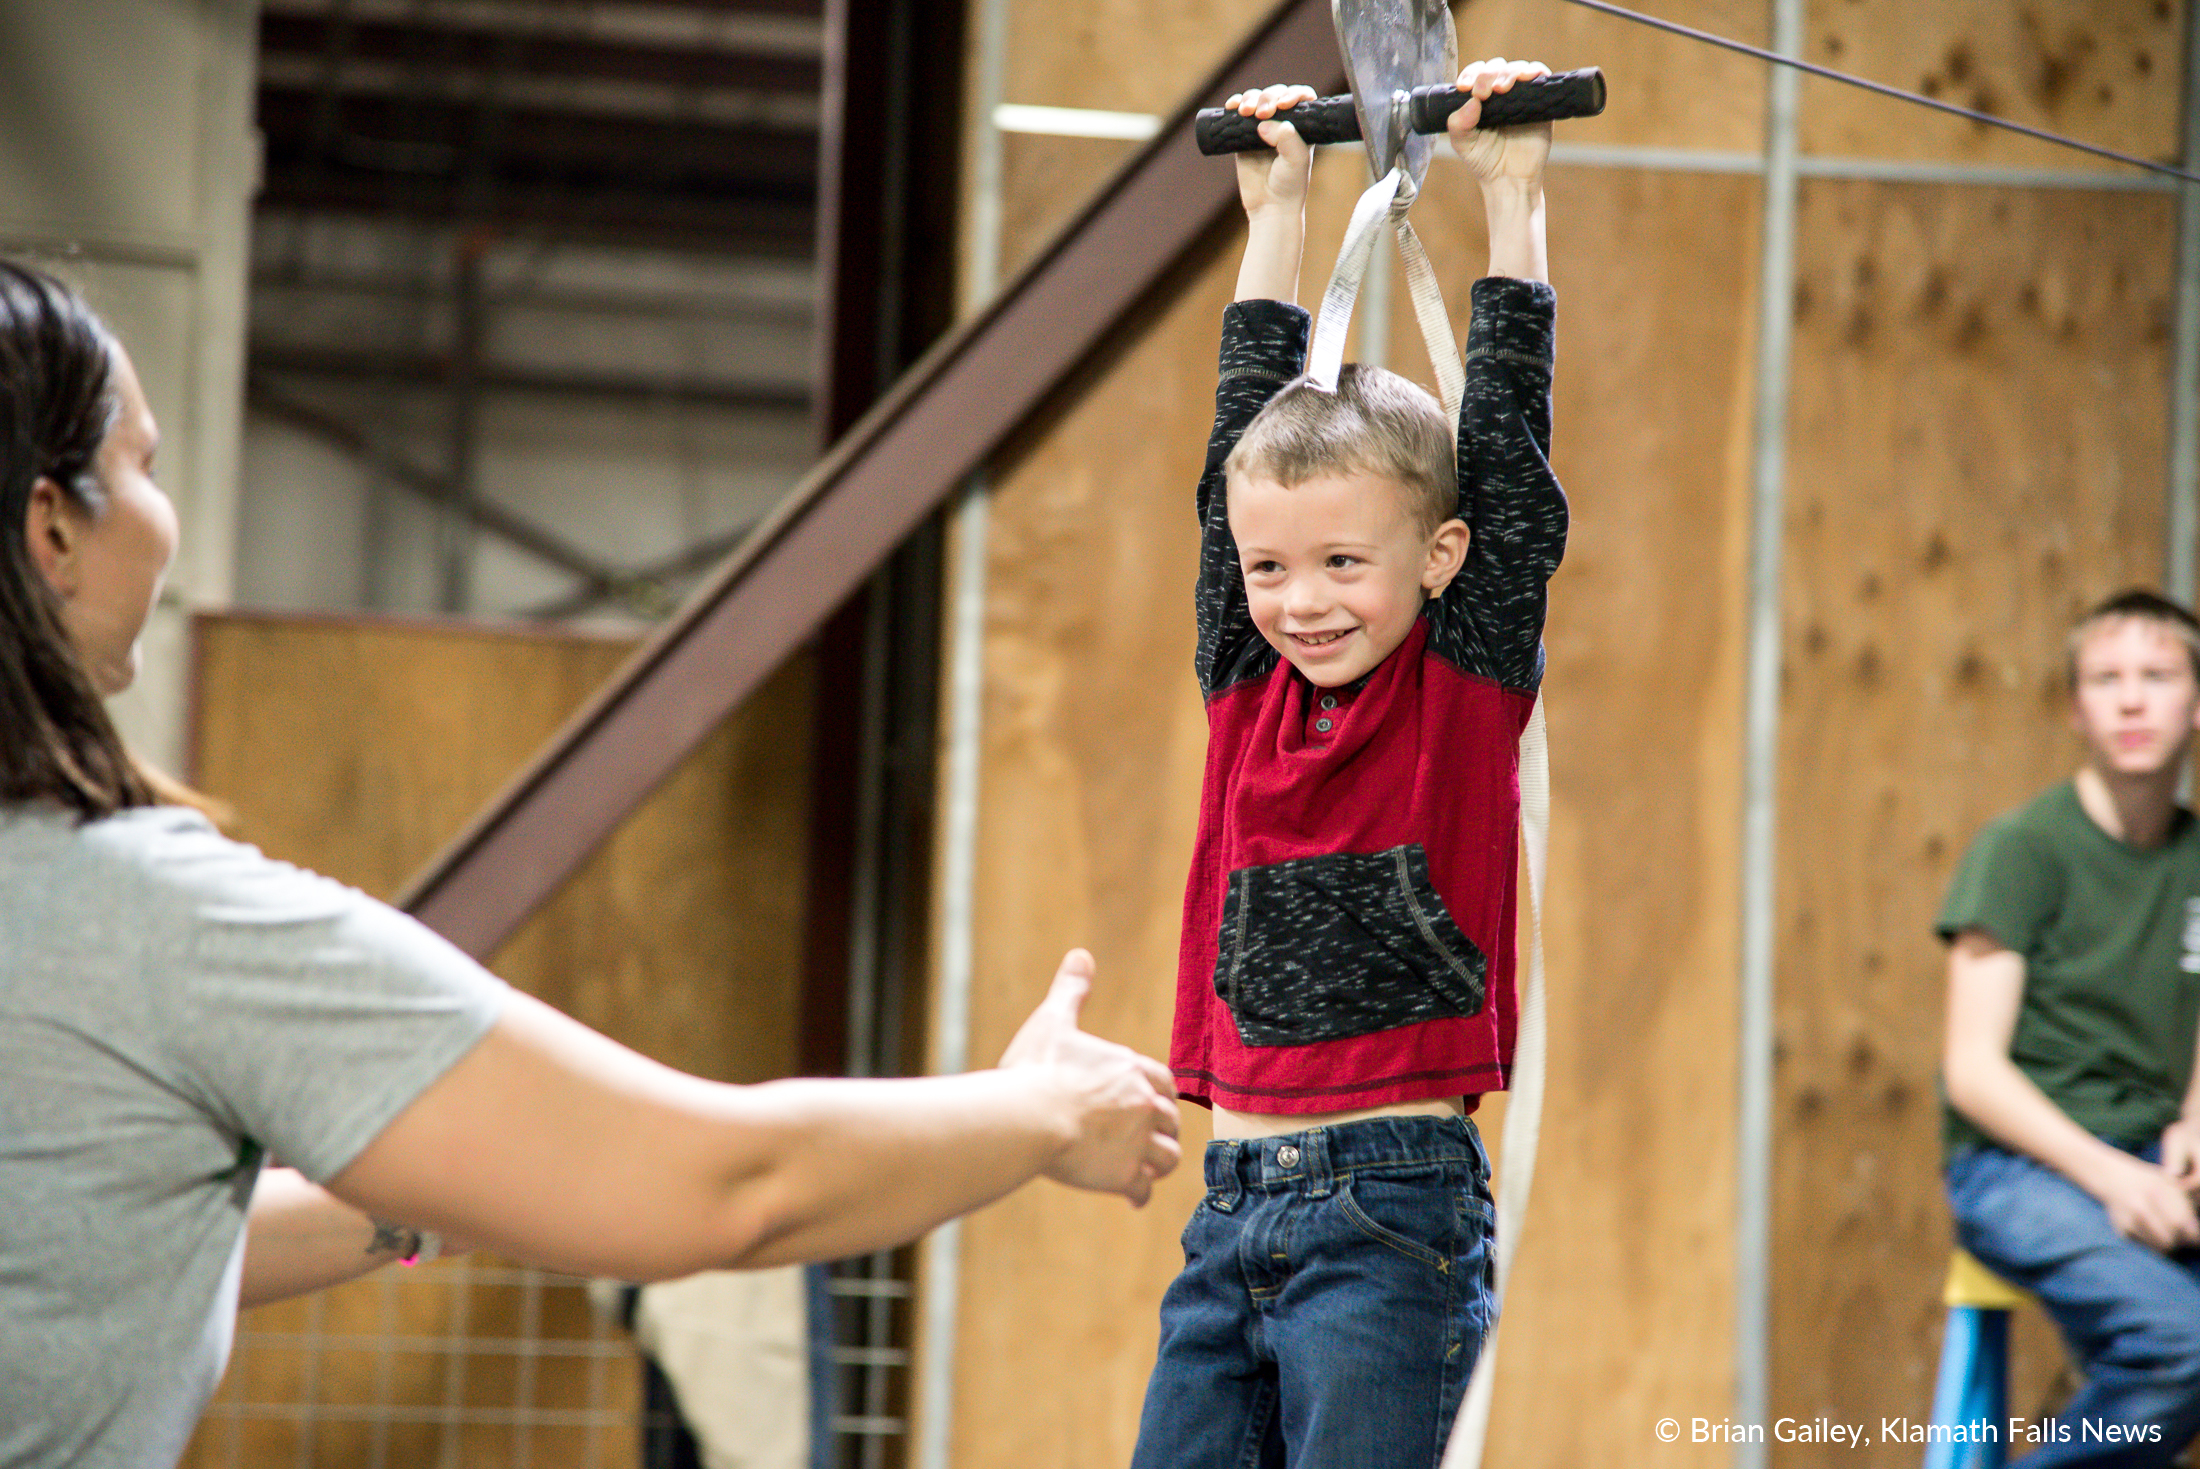 Braydon Henderson grins and giggles as he slides down the Boy Scouts zip line at PLAY Outdoors, Klamath Falls, Ore. - January 20, 2018 (Brian Gailey)